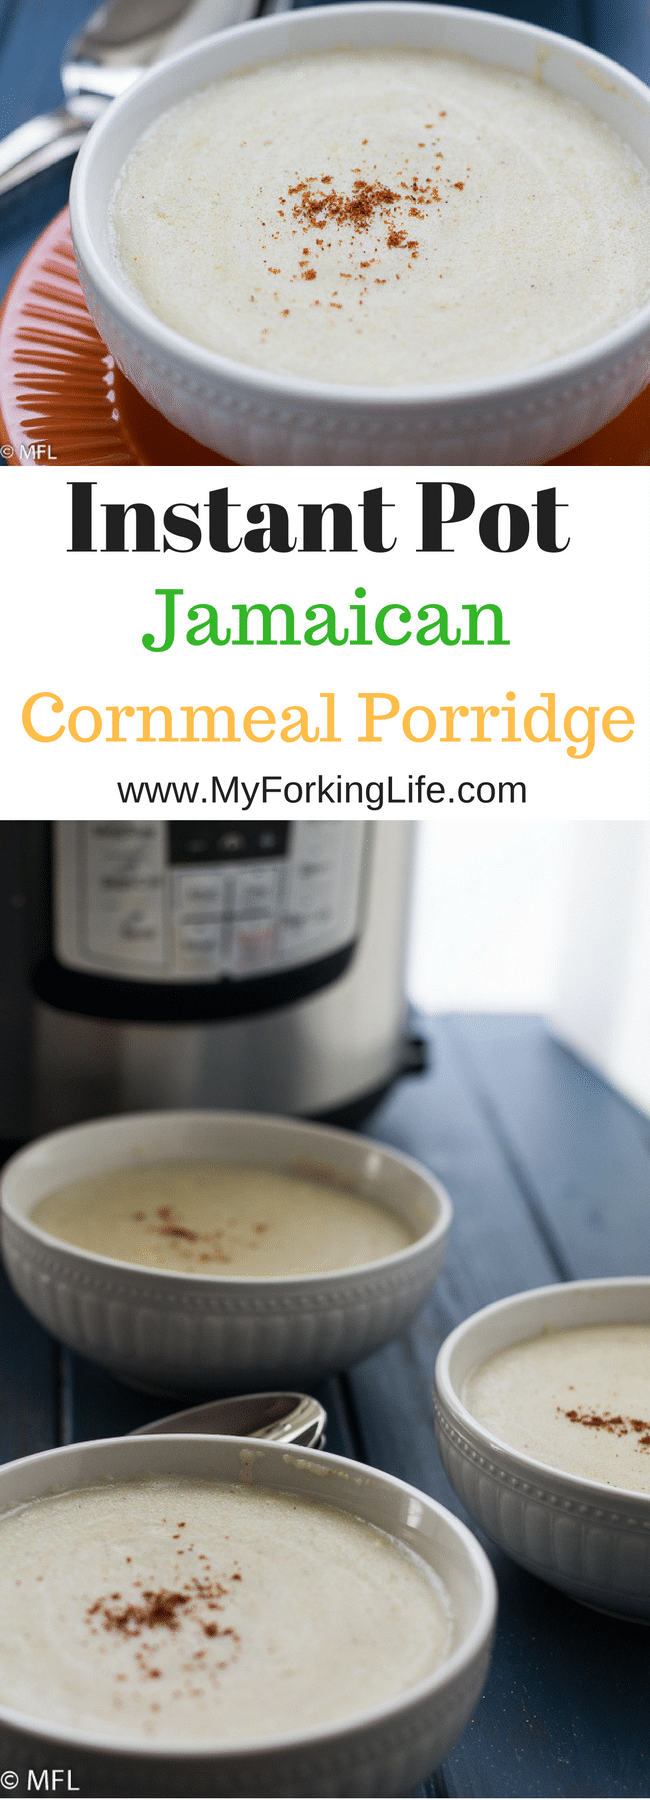 Insta pot Jamaican Cornmeal Porridge Recipe. Create this classic recipe in the instapot for a hands free breakfast. Quick, easy, delicious.